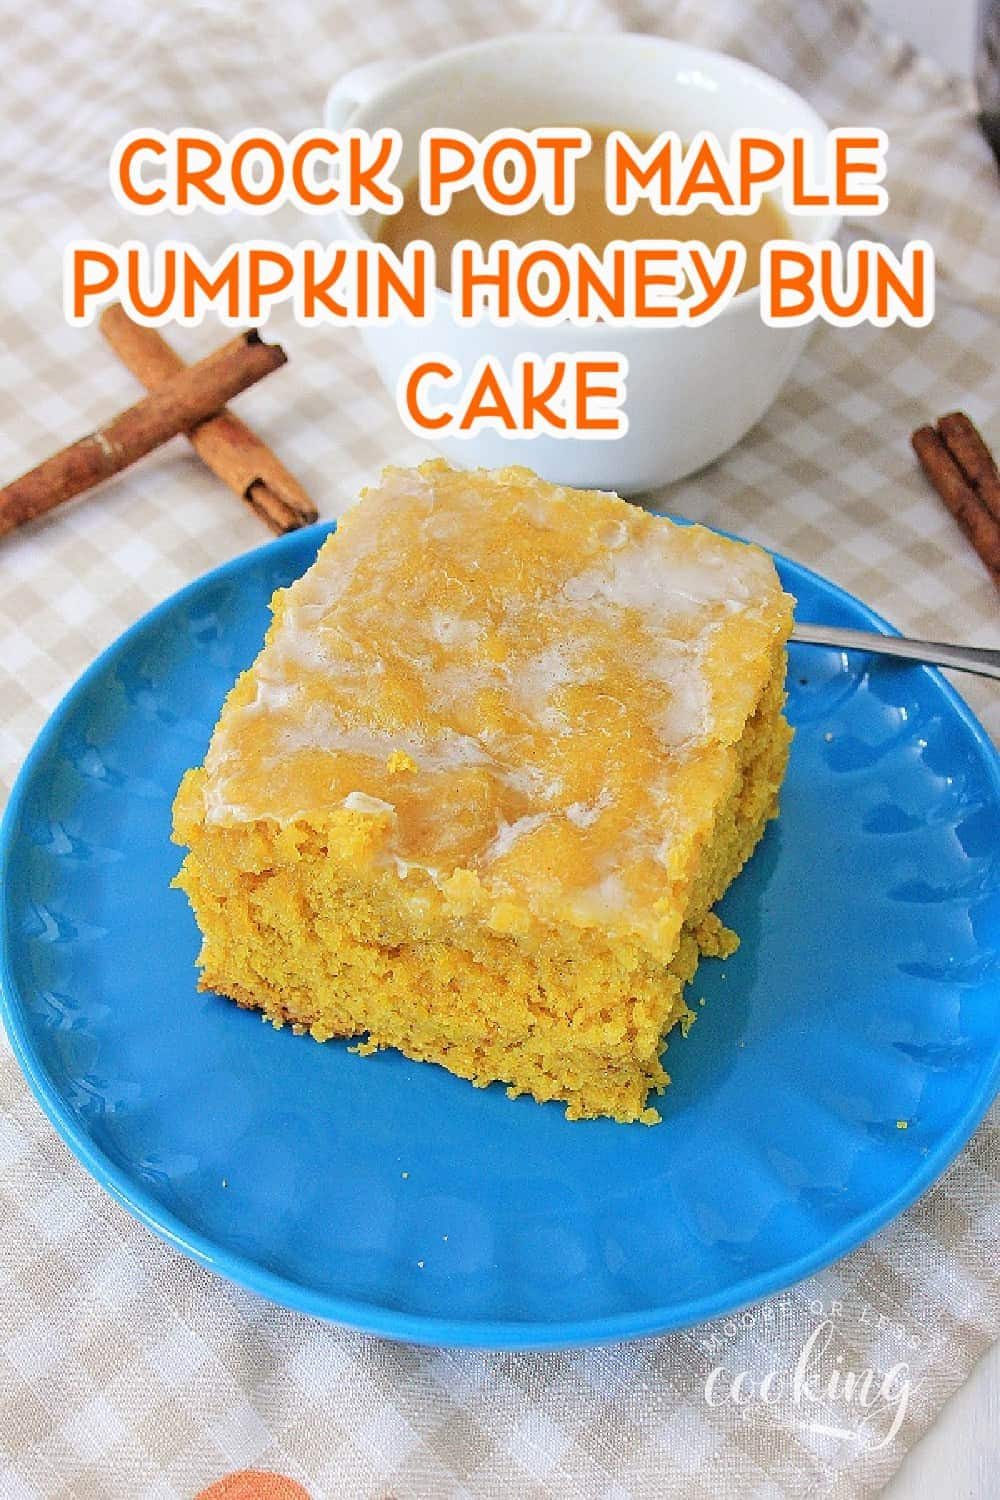 Take the classic sweet honey bun taste and turn it into a fall cake sensation with the flavors of pumpkin and maple. This crowd-pleasing Crock Pot Maple Pumpkin Honey Bun Cake is perfect for breakfast, brunch, snacks, or on your holiday dessert table. via @Mooreorlesscook